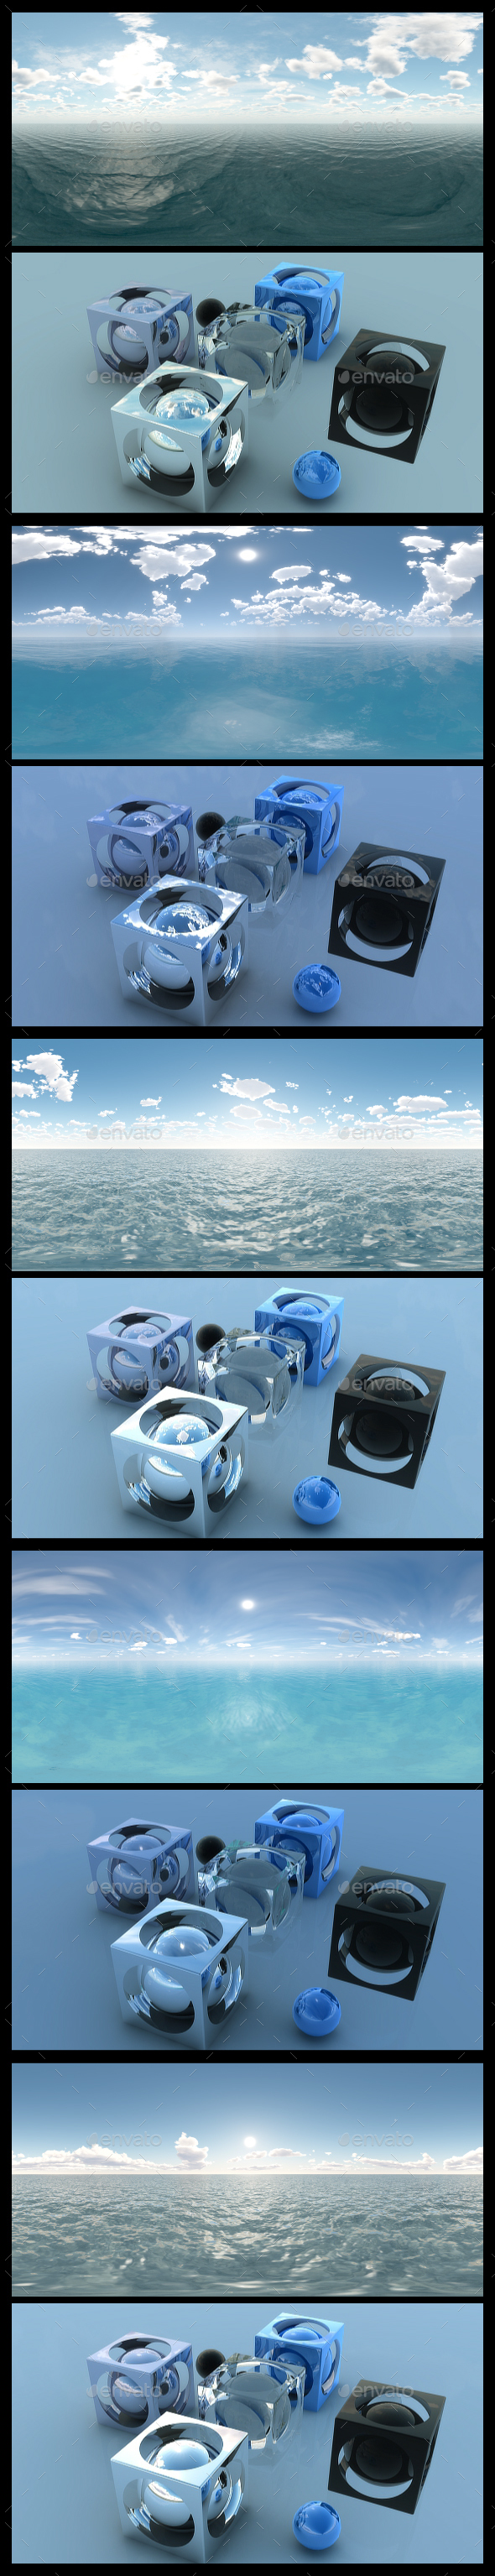 Ocean Blue Clouds - HDRI Pack - 3DOcean Item for Sale